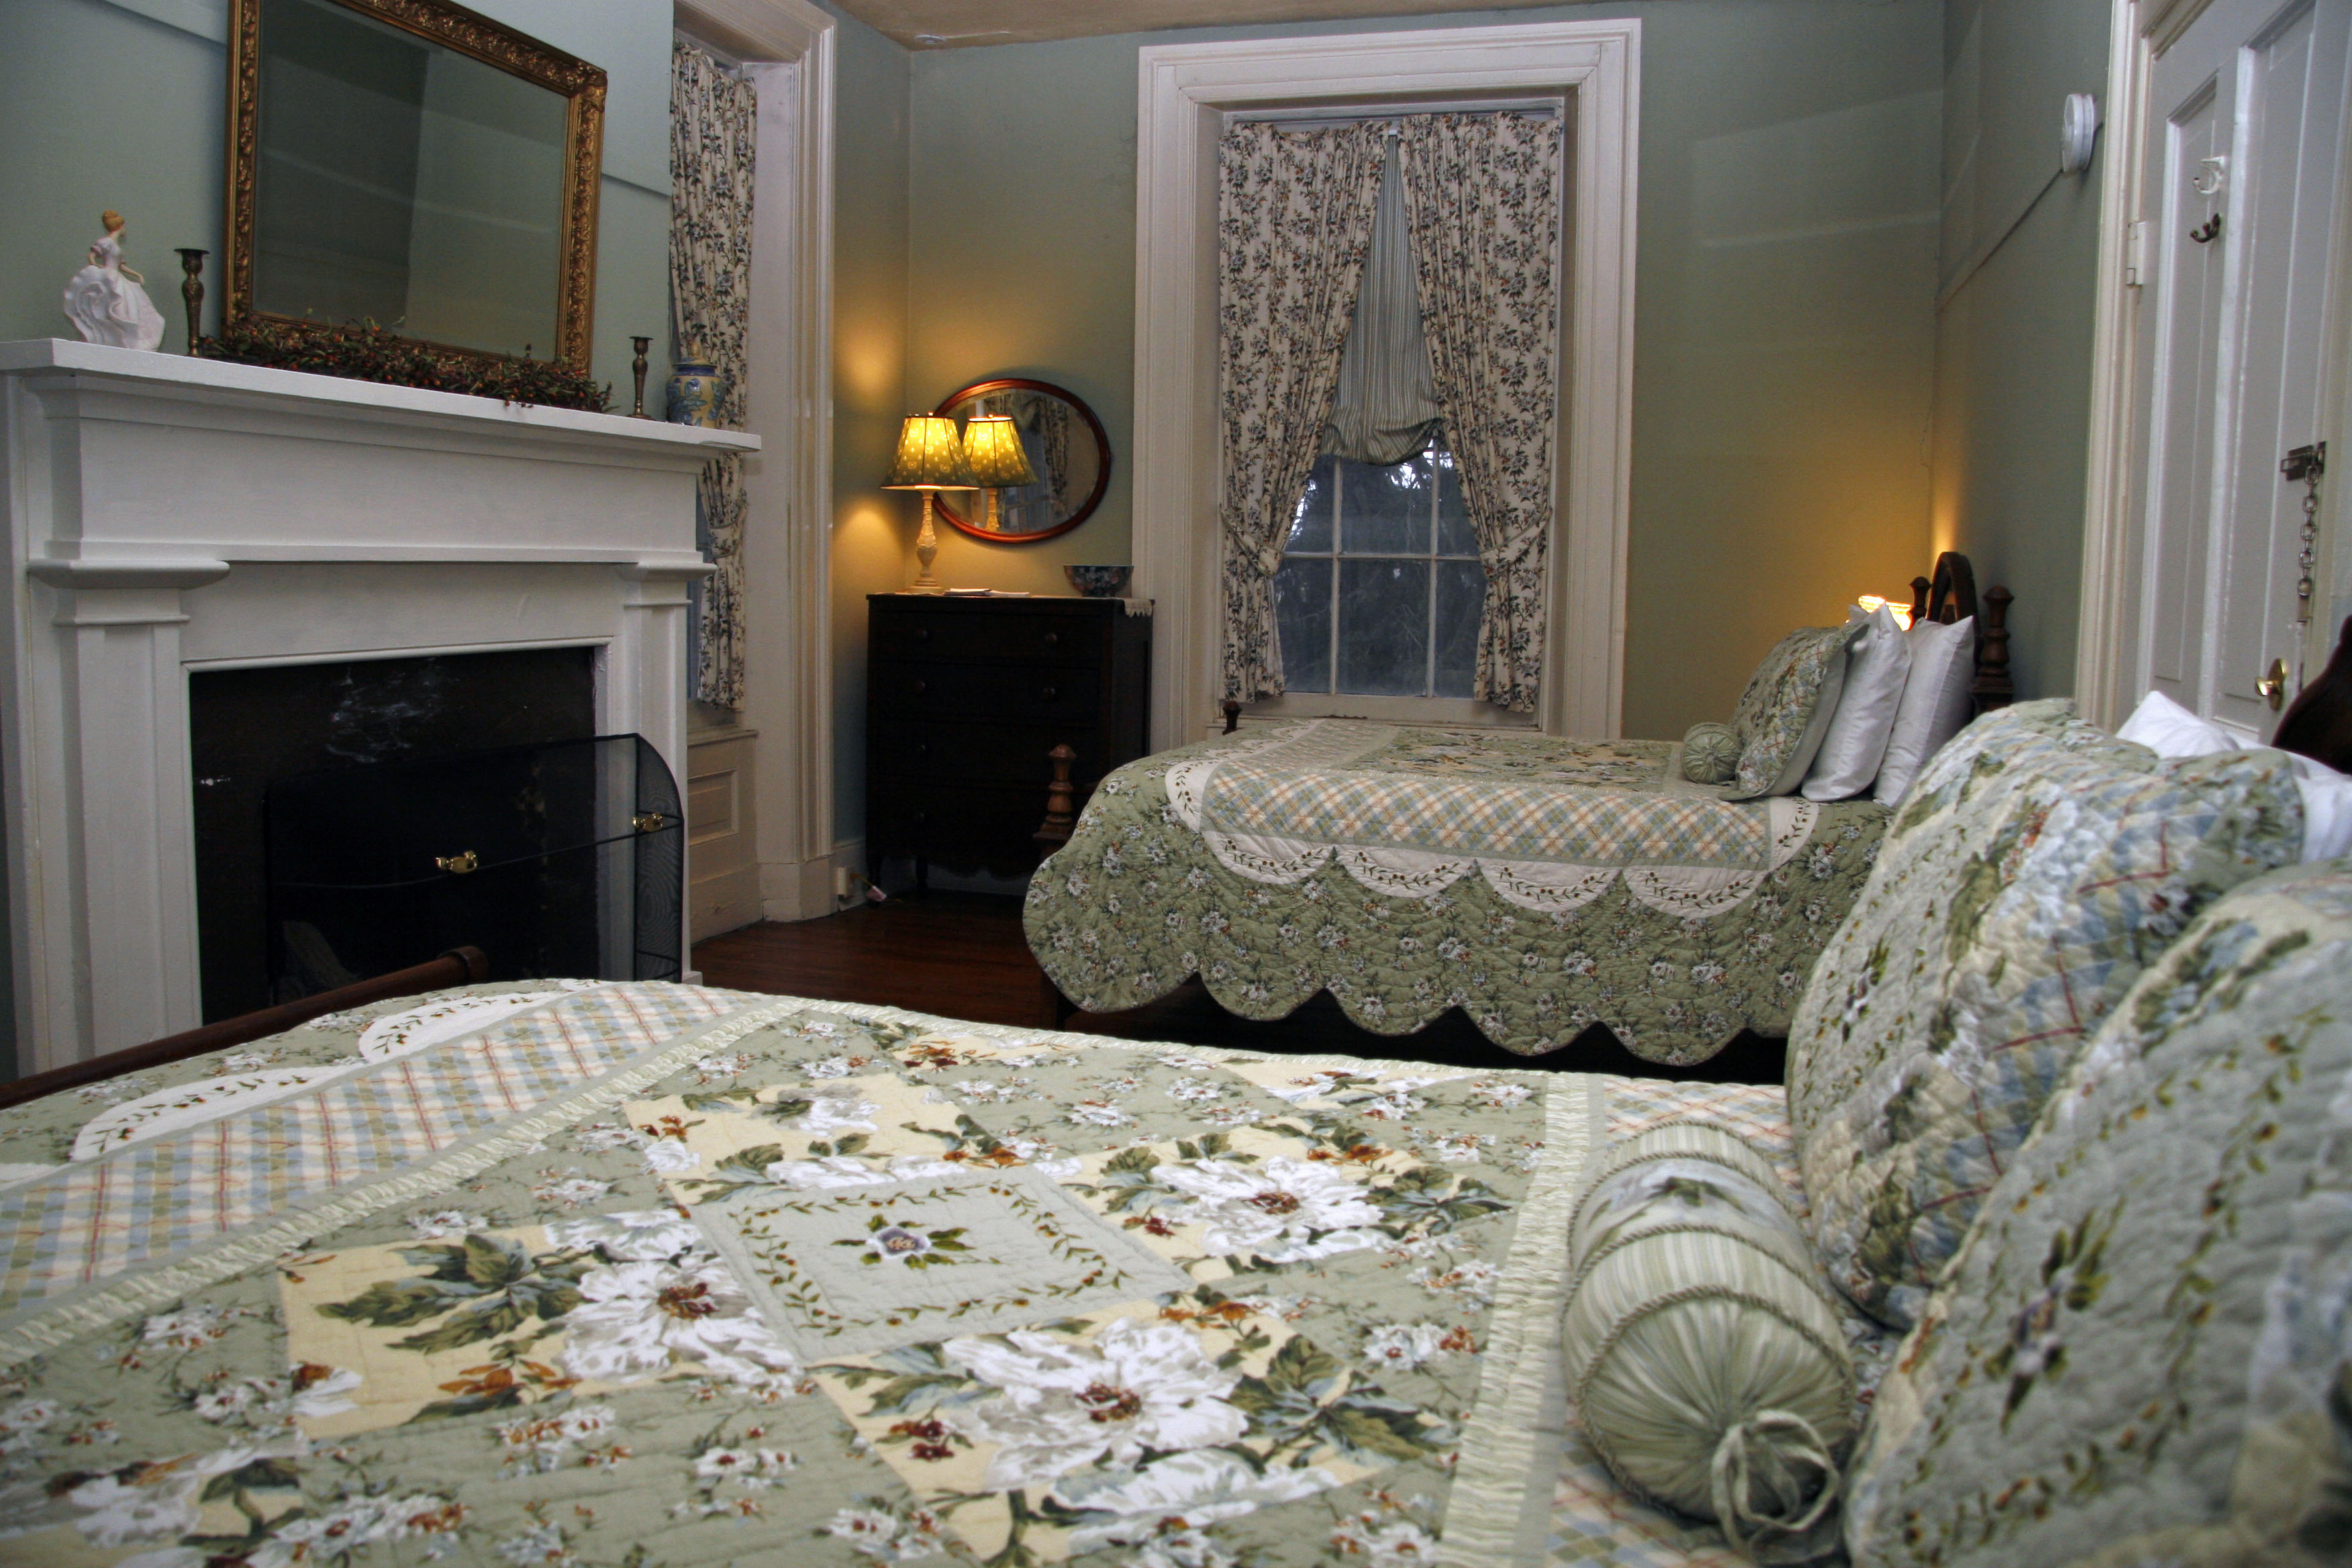 Two queen size beds, fireplace